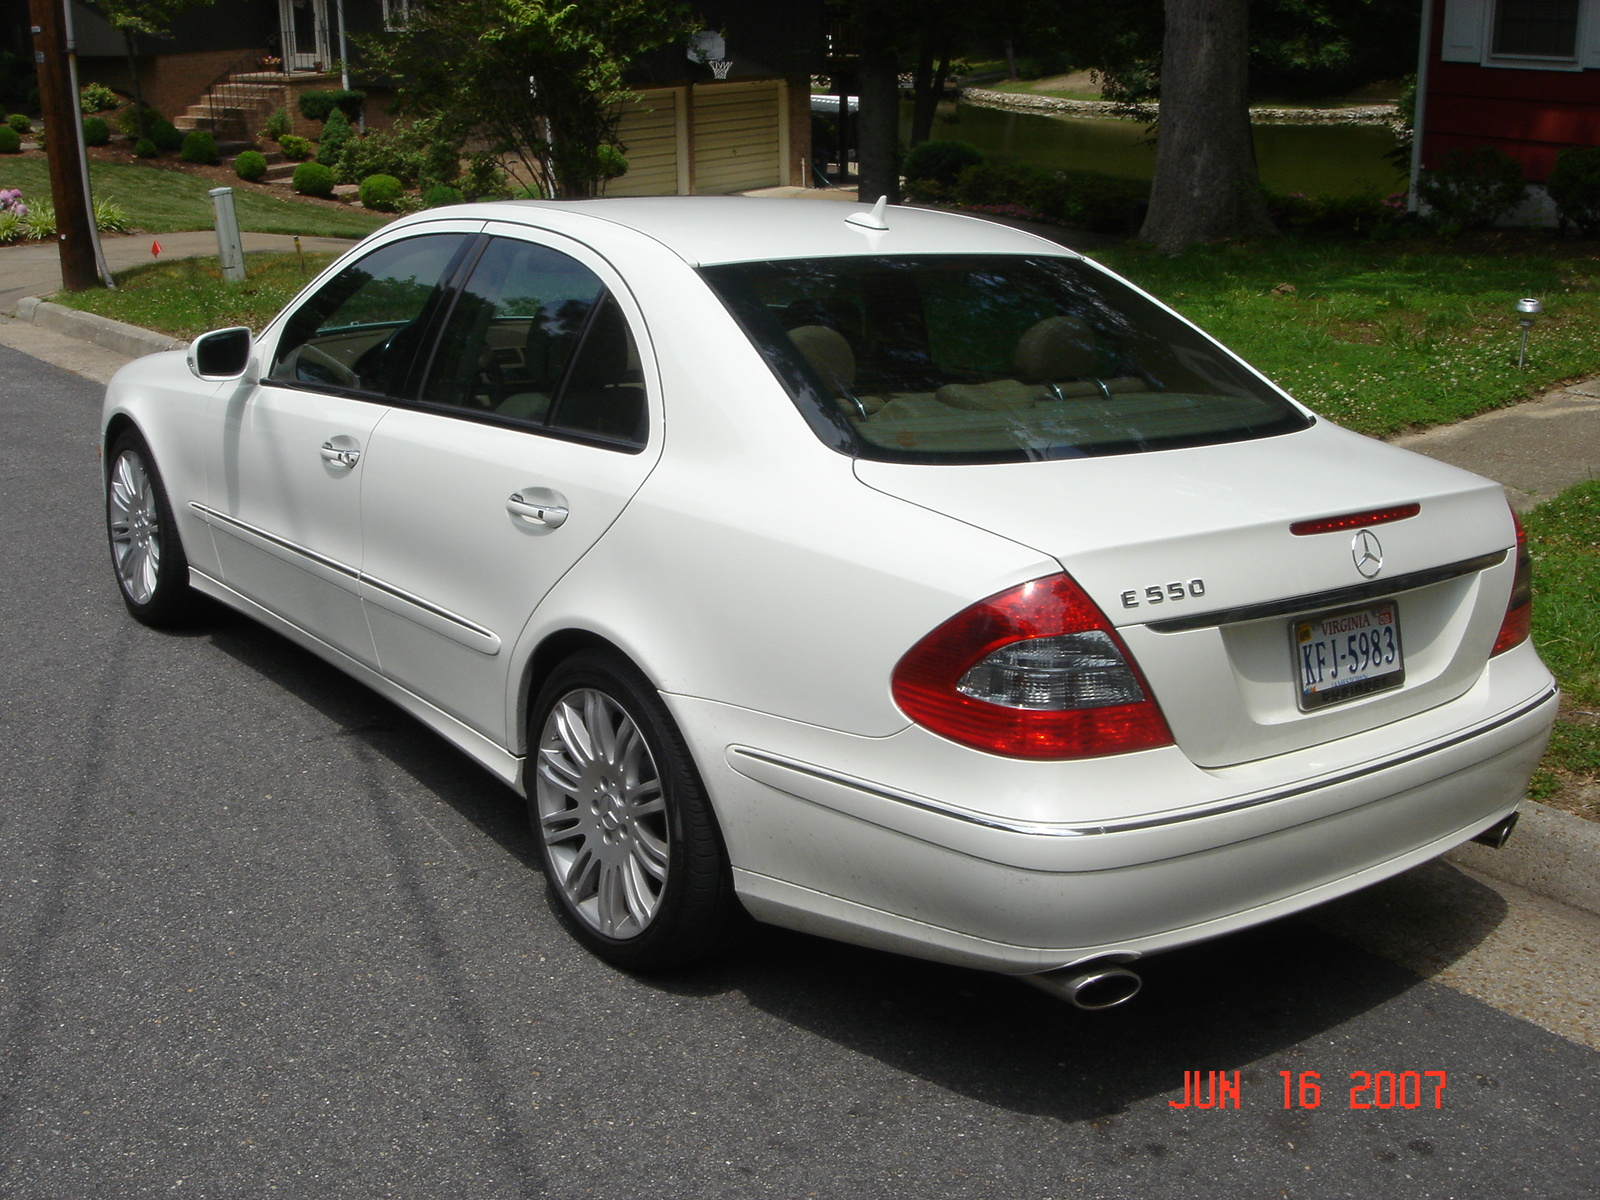 Mercedes Benz E Class Used Review 2004 2013 13768 besides Interior furthermore 2010 Rx 350 furthermore Pet Grooming Van Wagn Tails Hybrid 3 0 Mercedes Benz Turbo Diesel Dodgesprinter 62413 additionally 2000 Mercedes Benz E Class Pictures C6167 pi36105131. on used 2010 mercedes benz e350